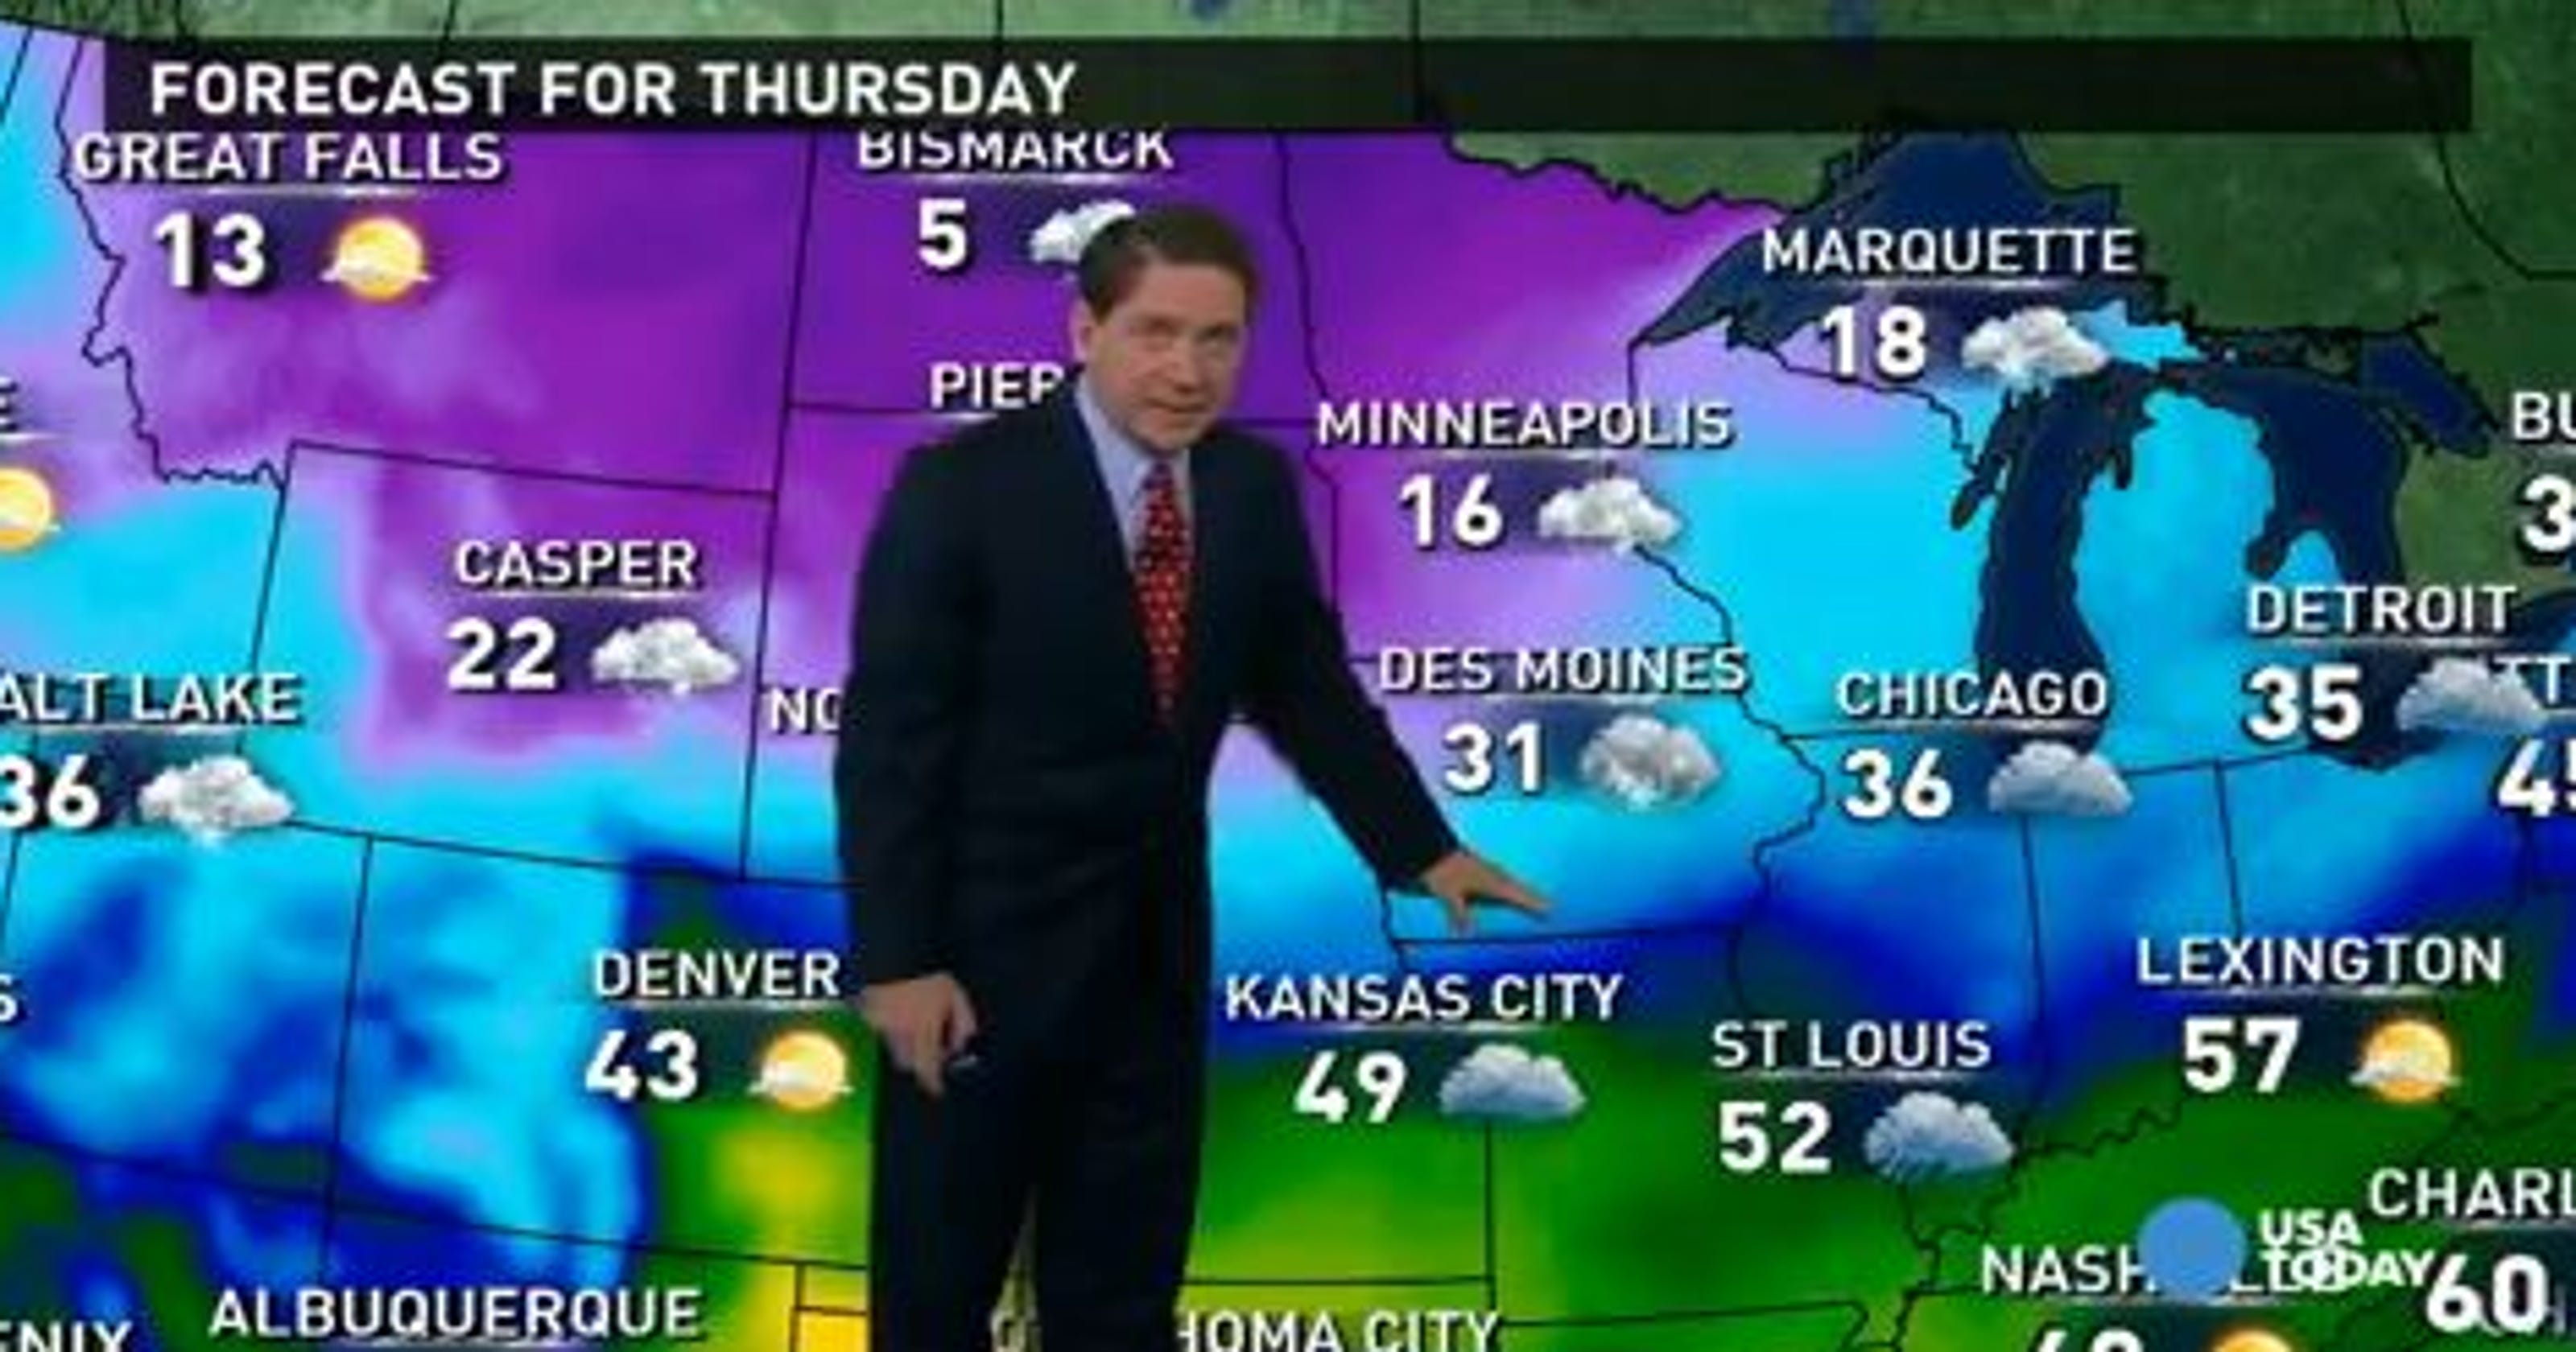 Thursday's forecast: Another helping of snow